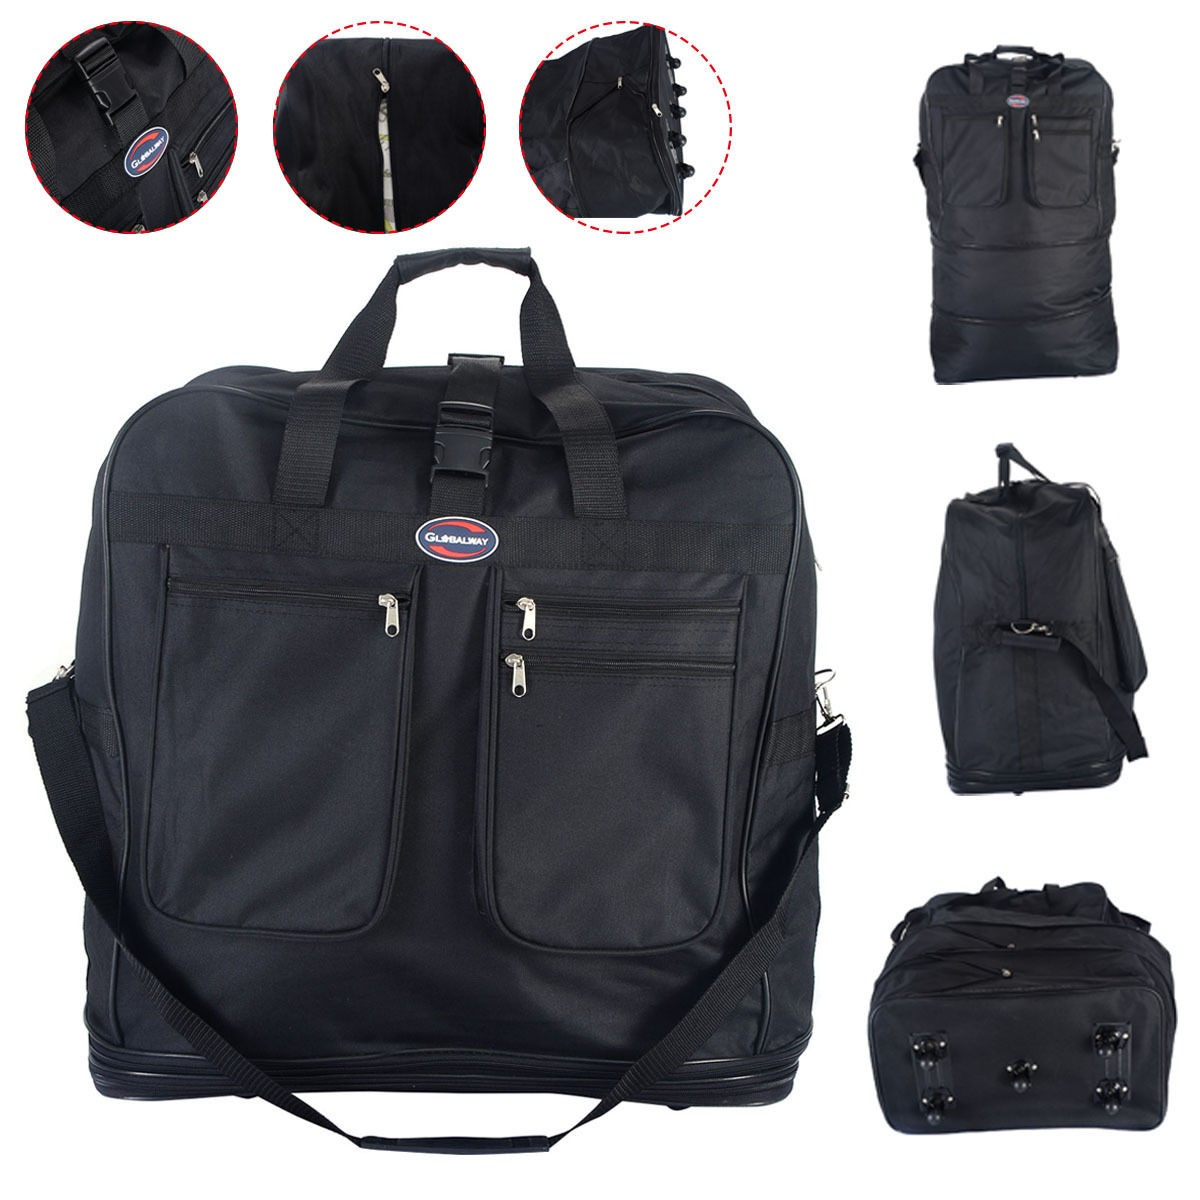 new 40 rolling wheeled duffel bag spinner portable suitcase spinning luggage ebay. Black Bedroom Furniture Sets. Home Design Ideas